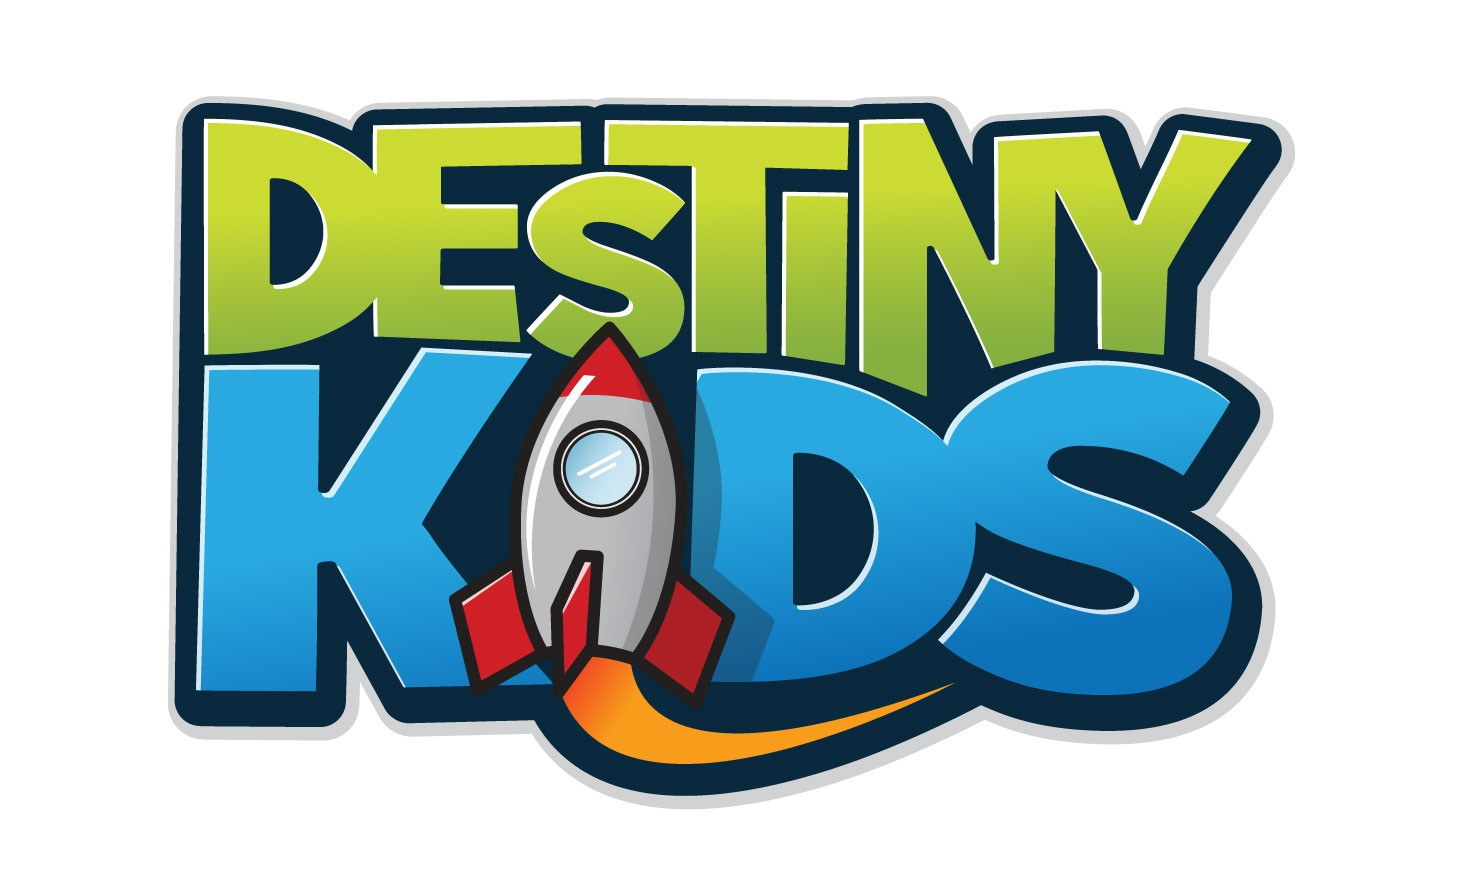 Create a fun Kids logo for fast growing Church in Maryland.